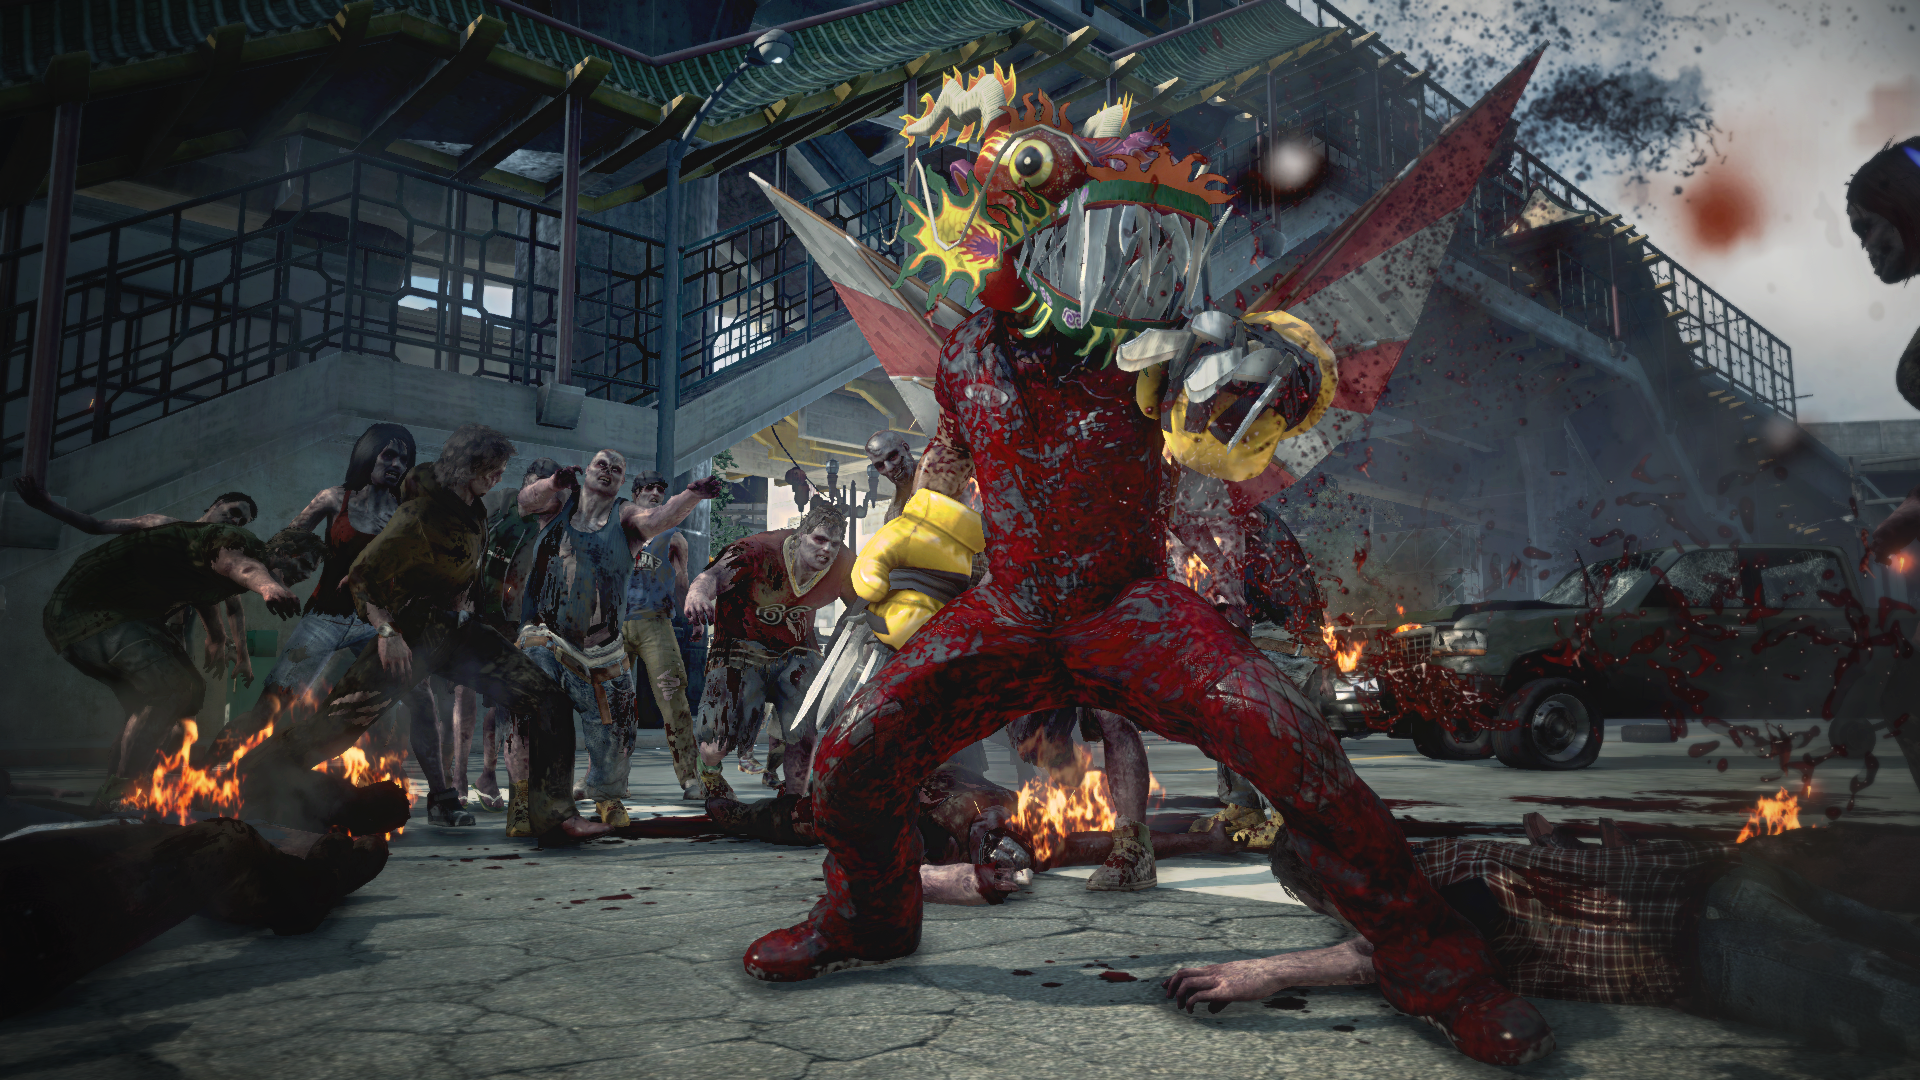 Dead rising 3 complete combo weapon guide gamesradar malvernweather Choice Image